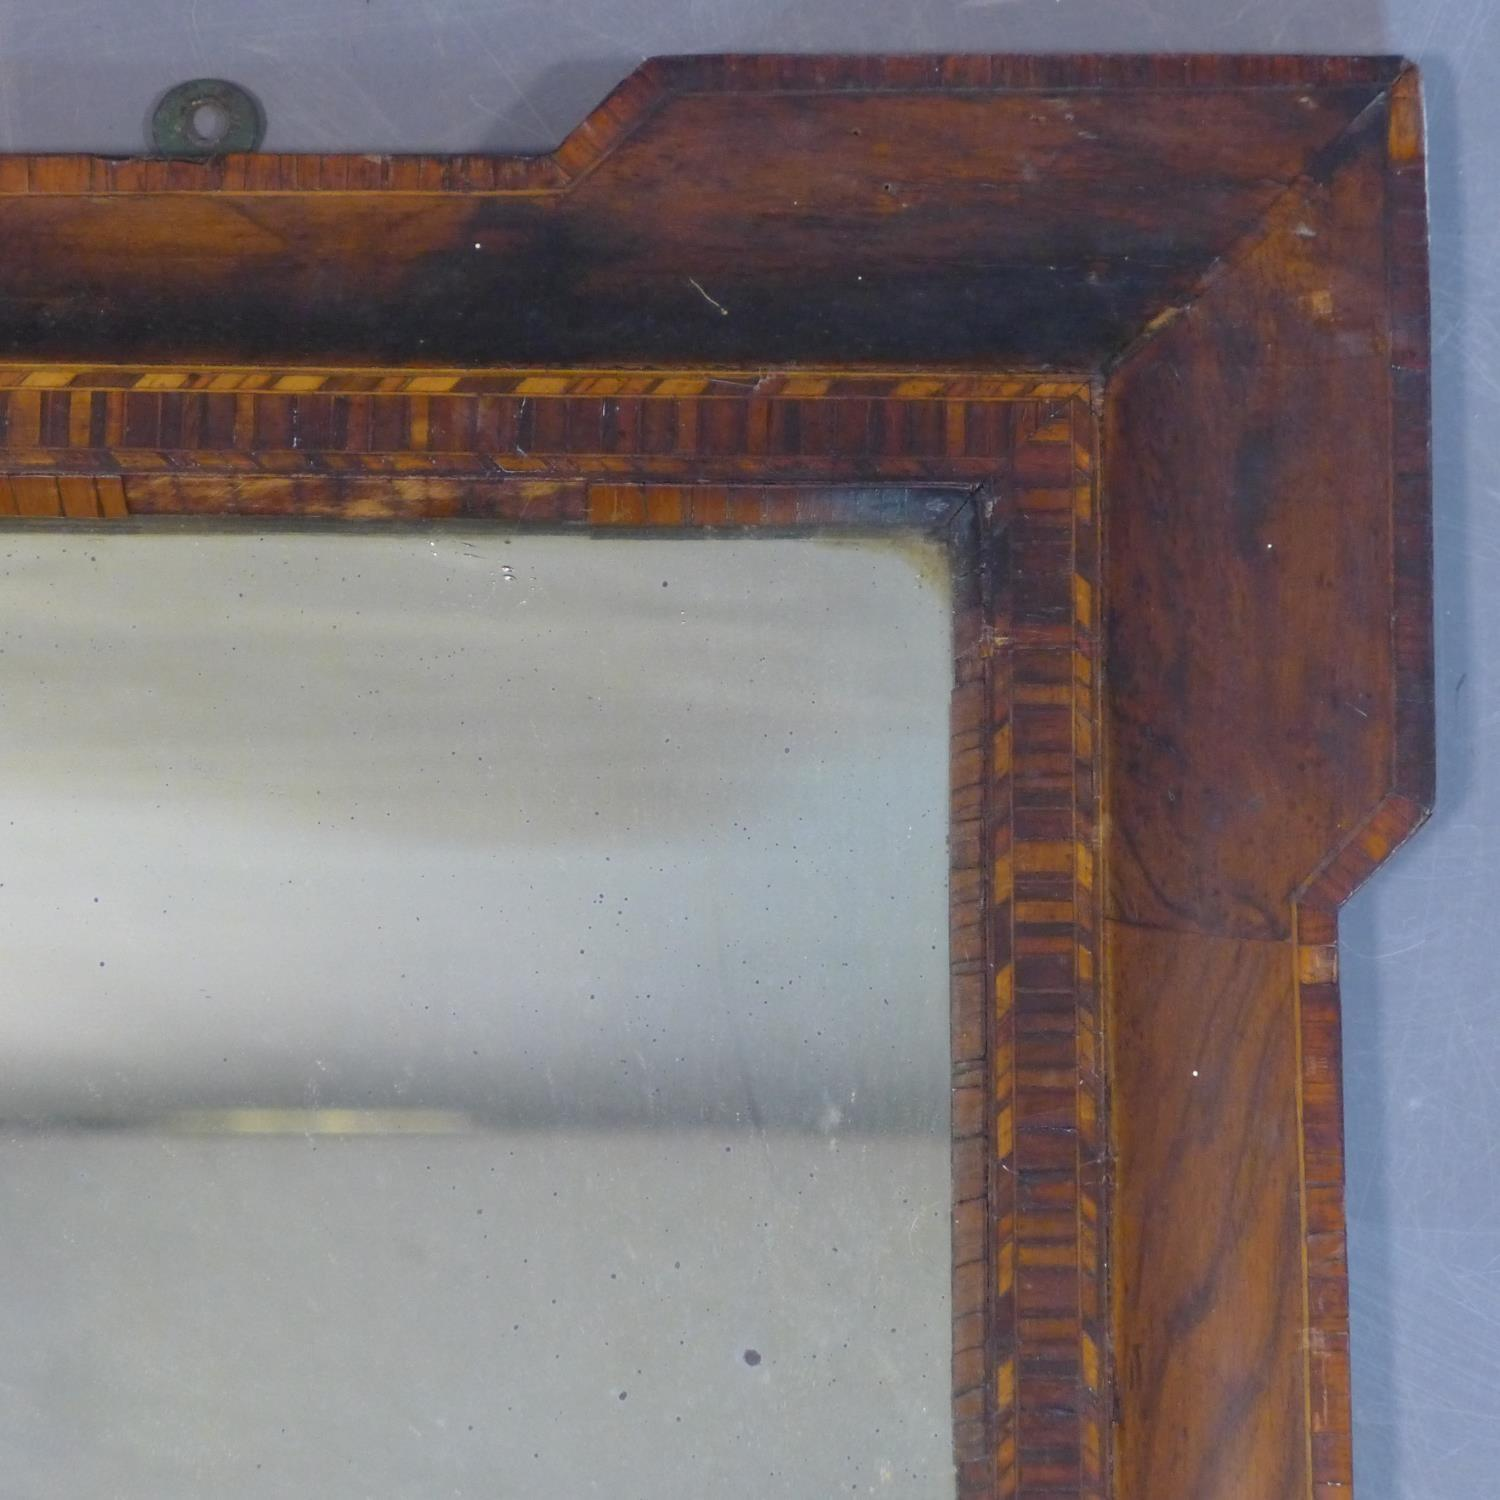 Lot 175 - An inlaid overmantle mirror with original glass plate, some marquetry and veneer pieces missing,